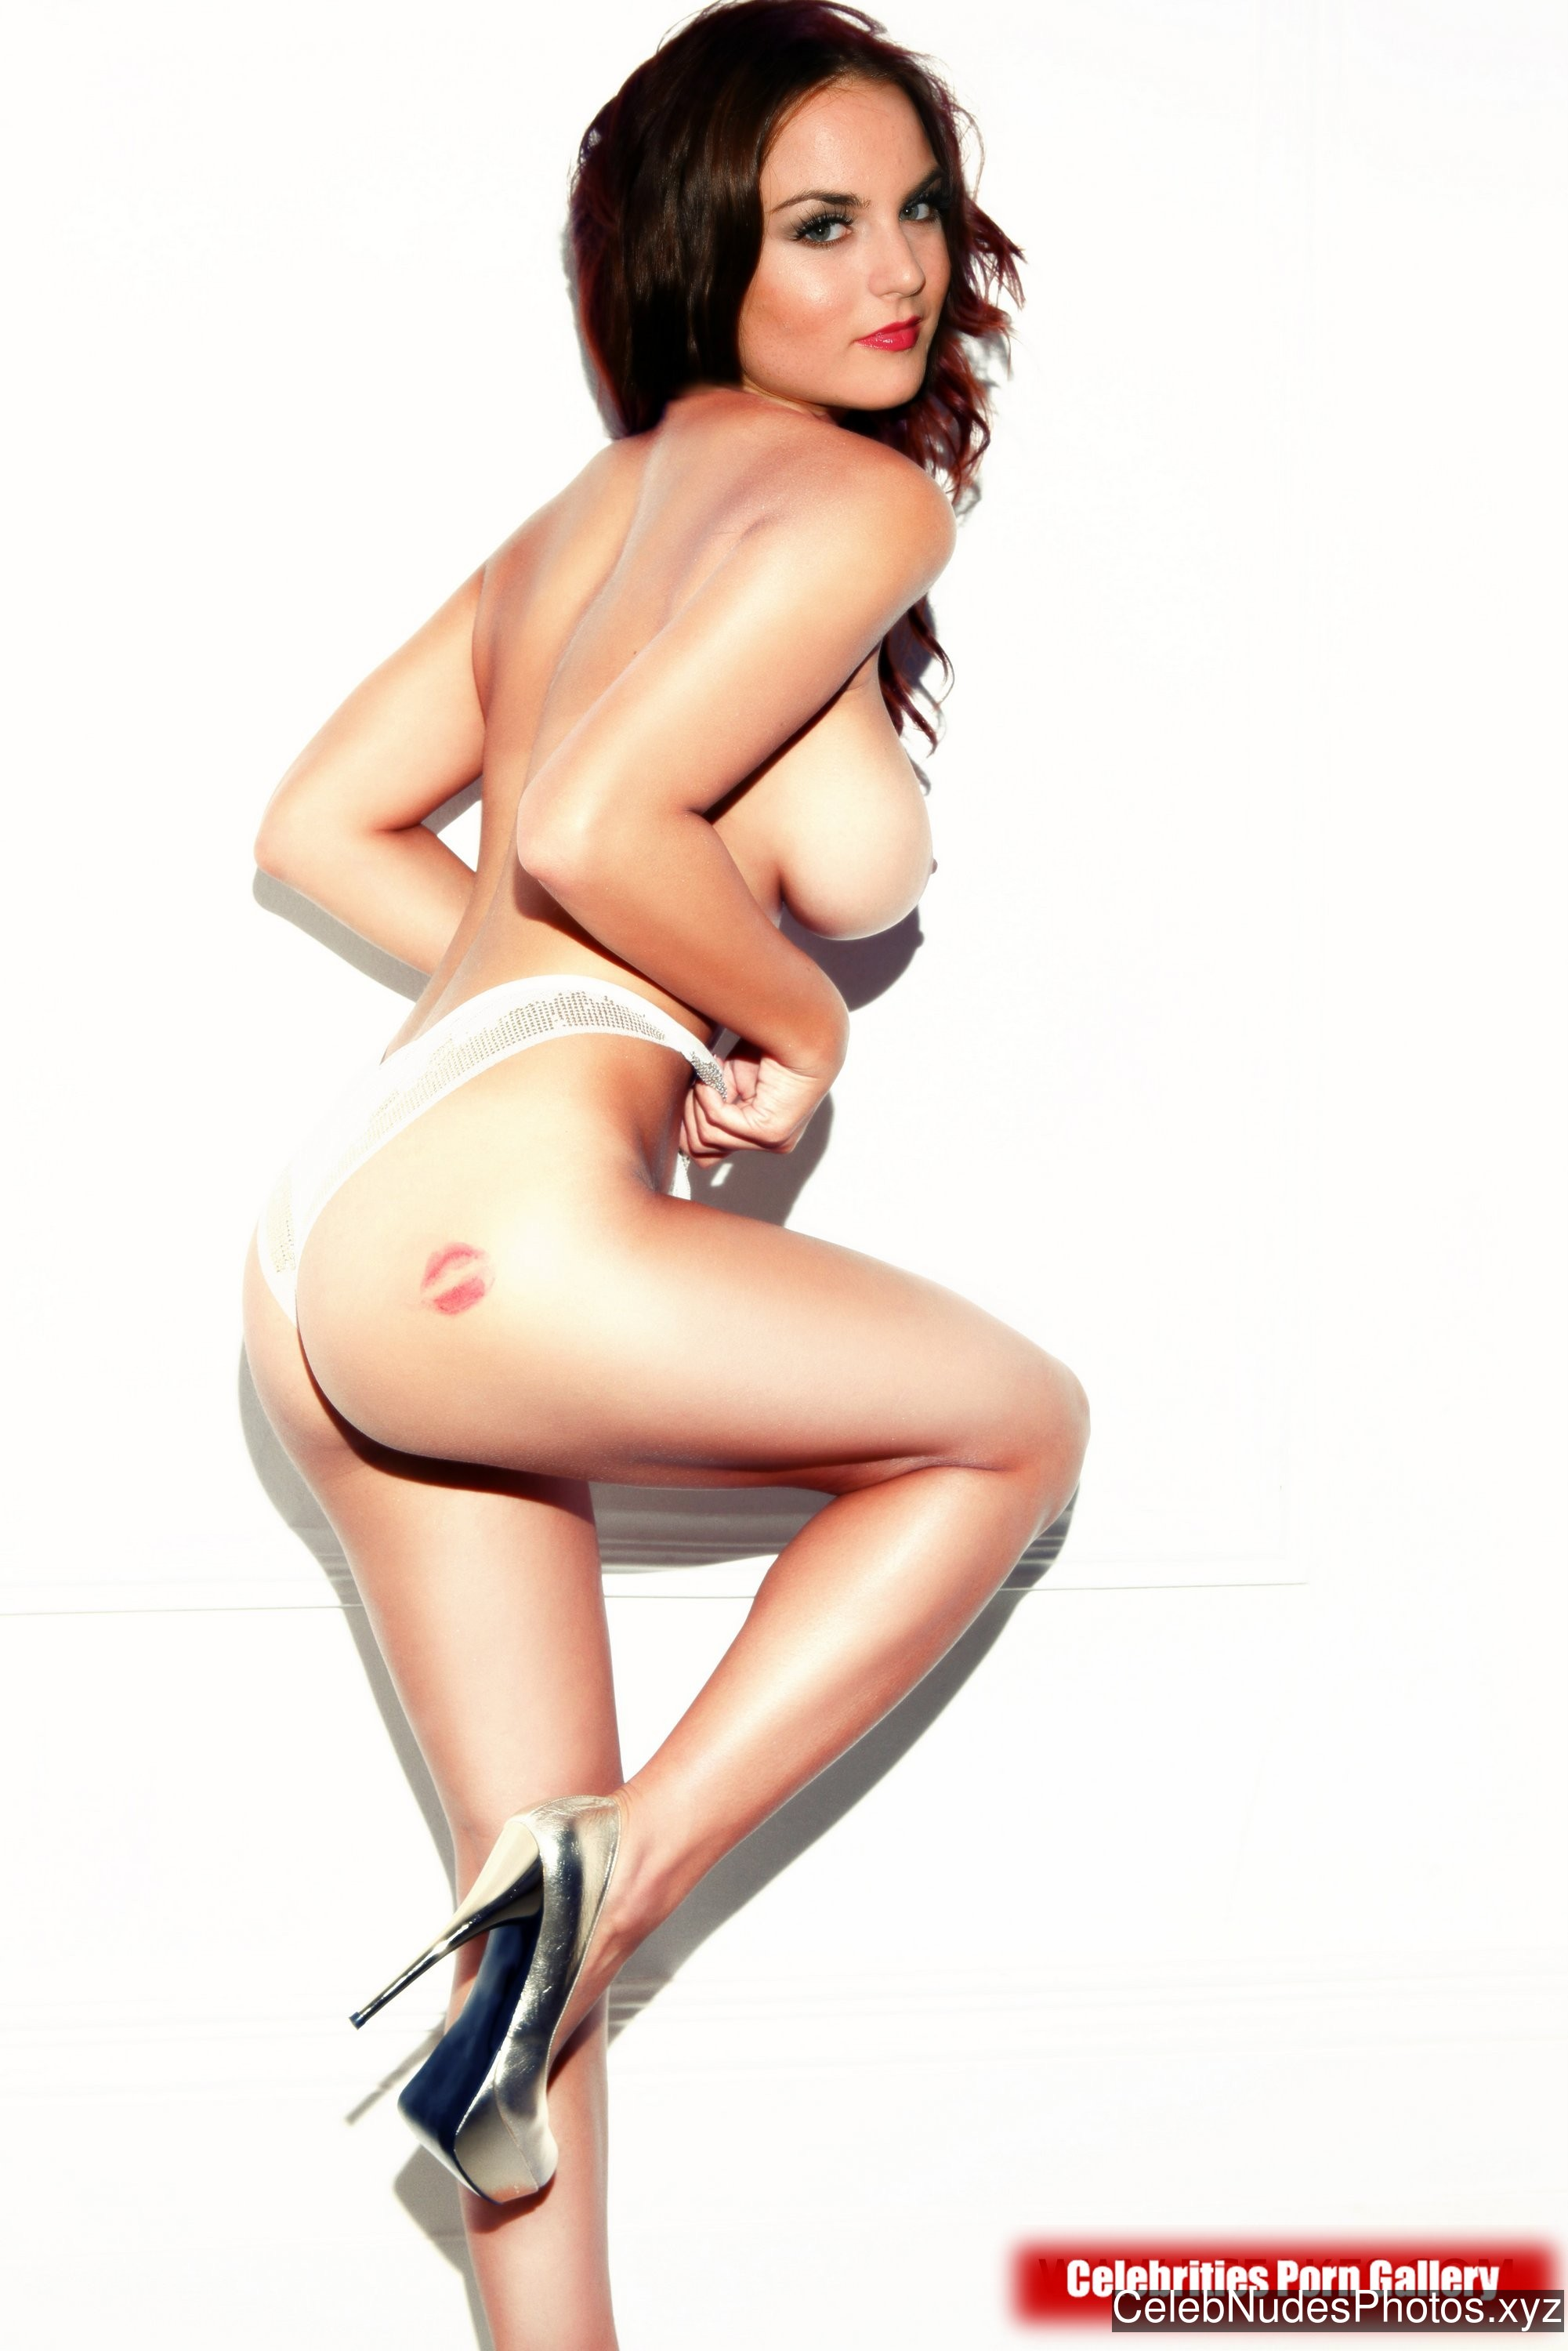 joanna levesque nude pictures